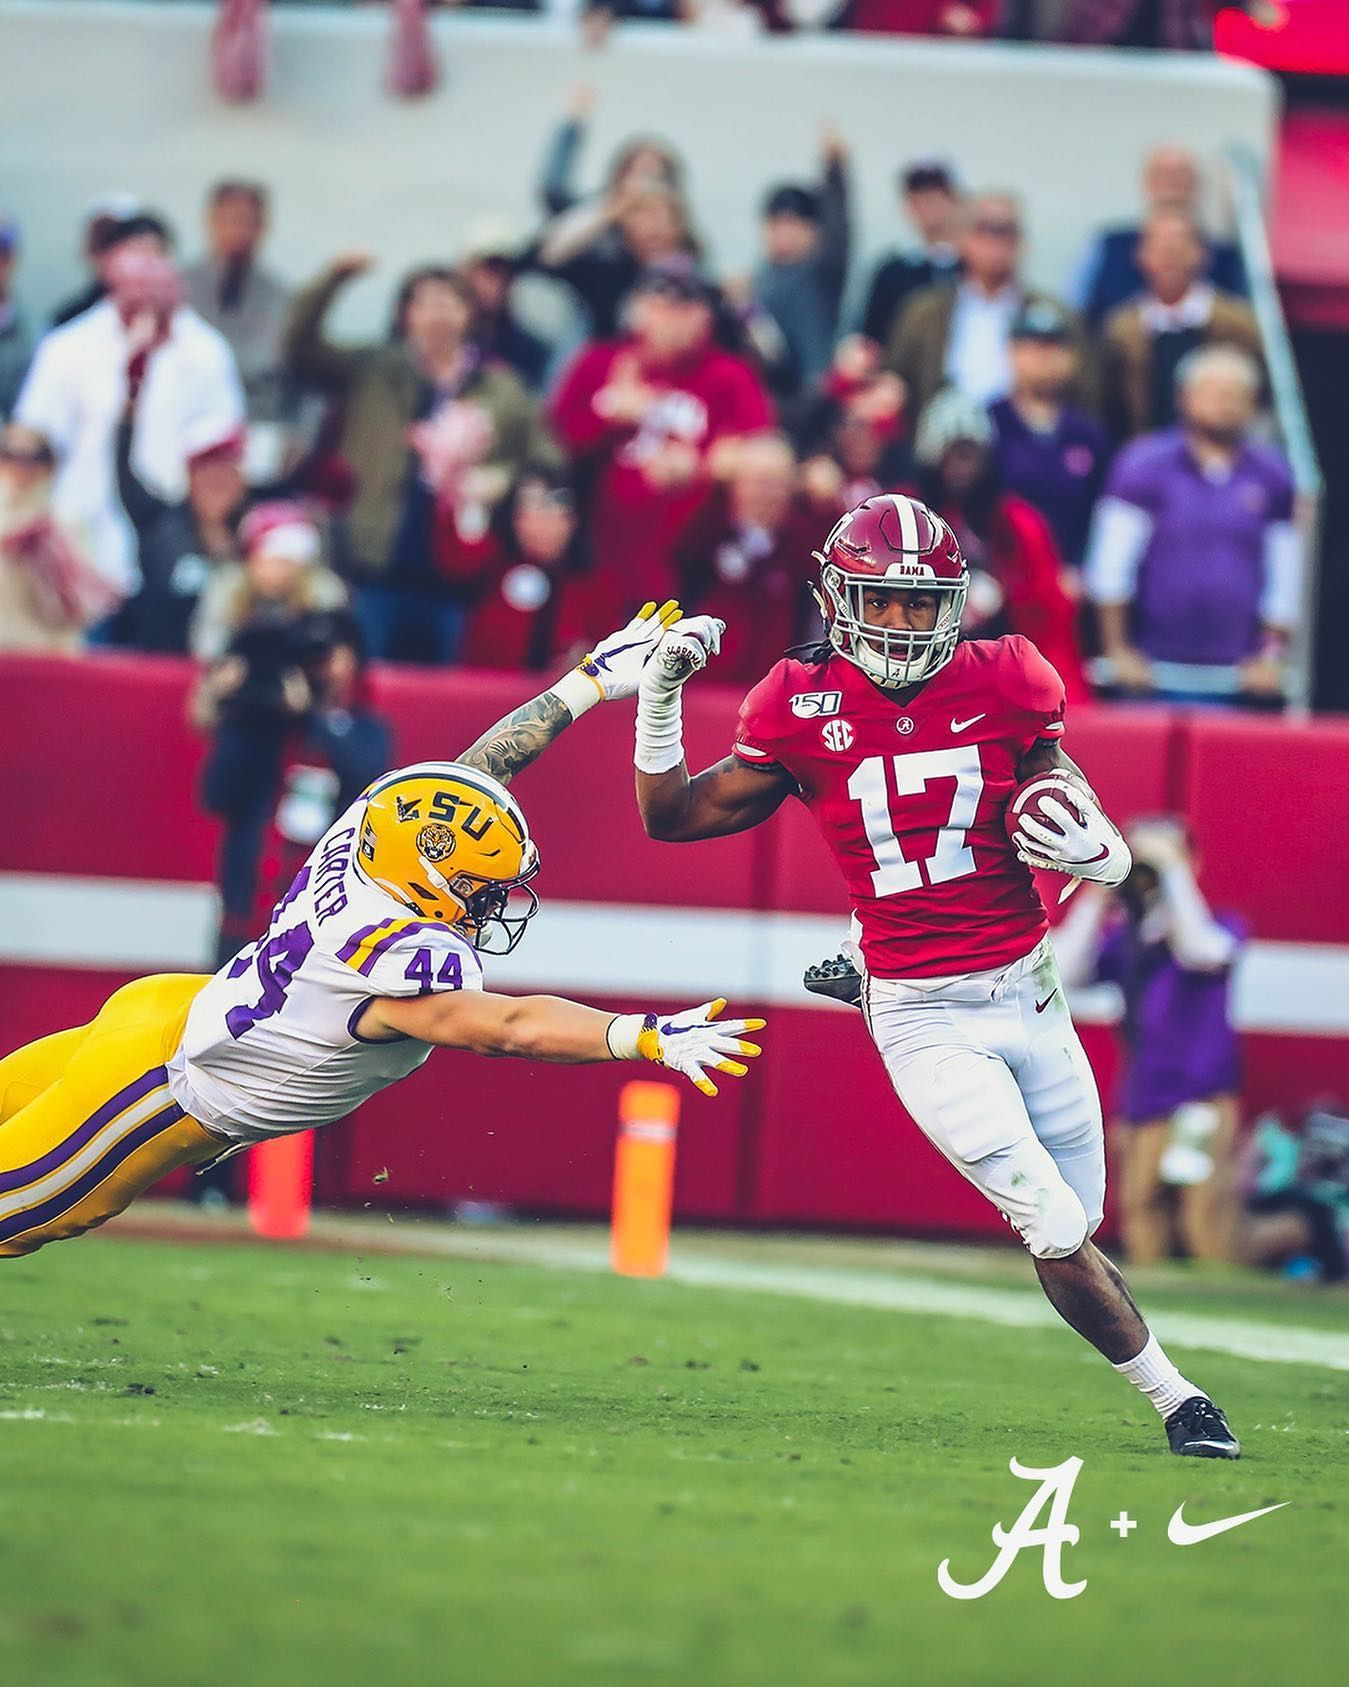 Pin by Natalie Hicks on Roll Tide! Alabama football roll